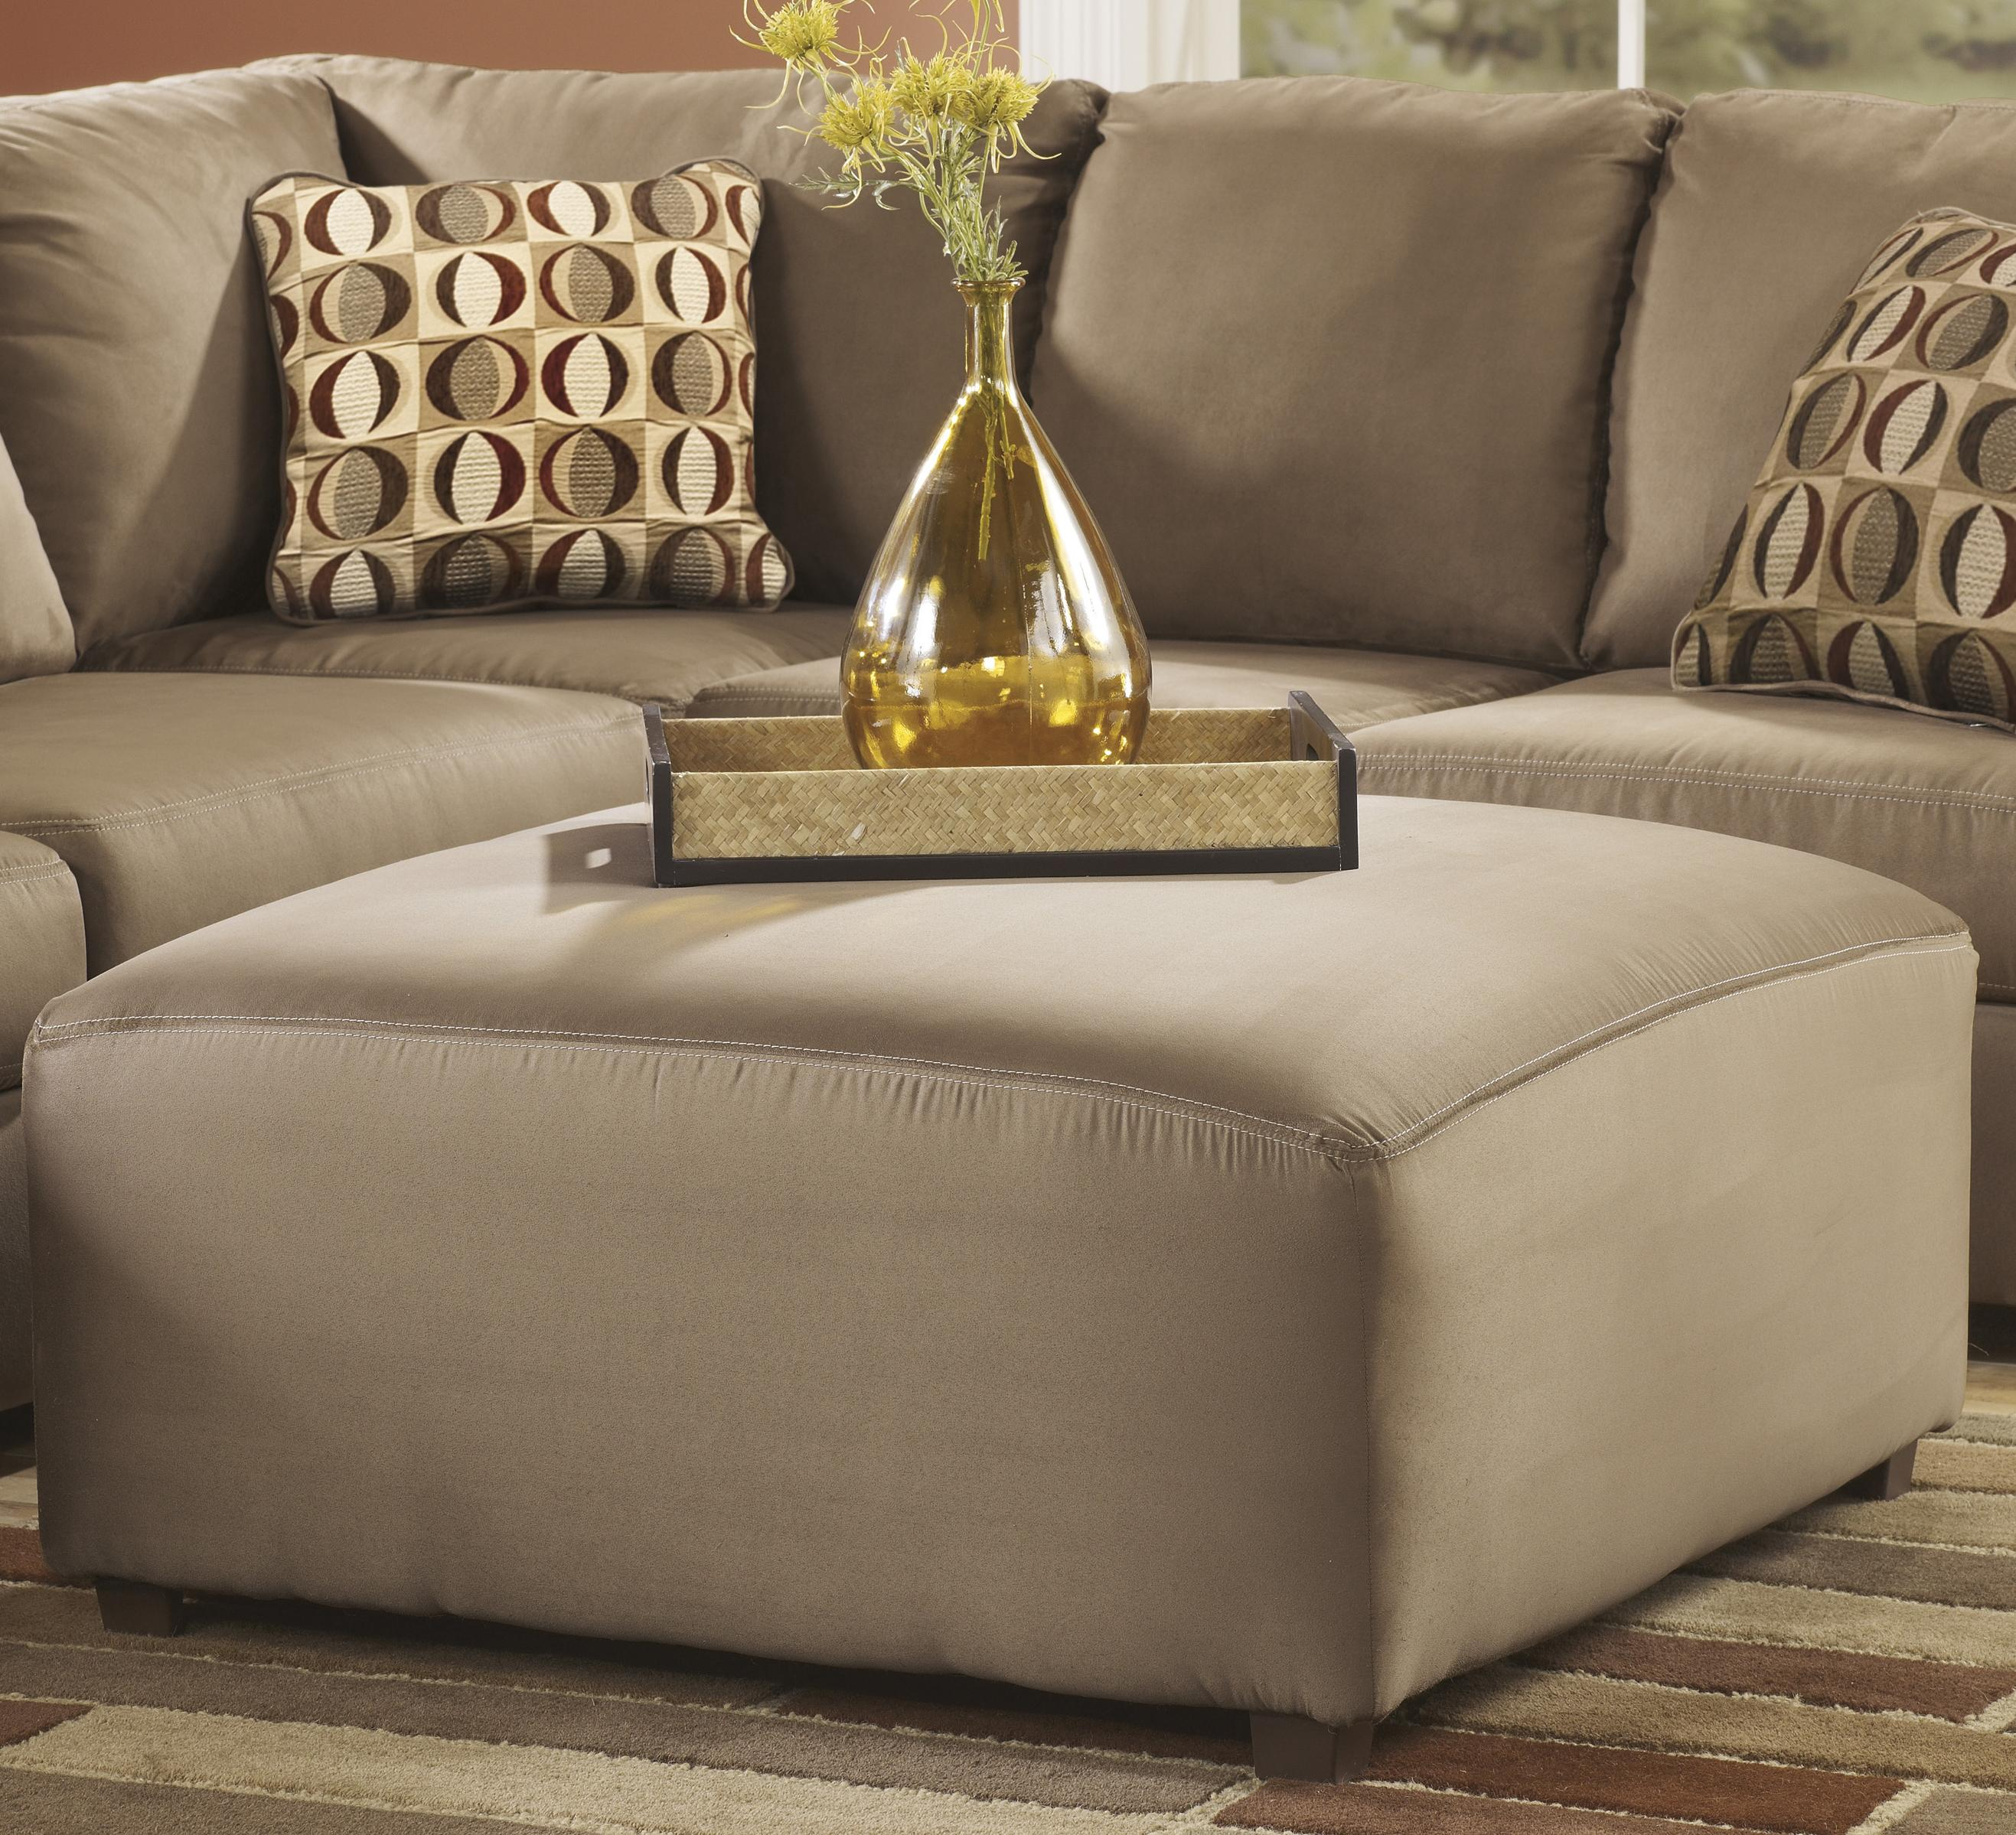 Signature Design by Ashley Cowan - Mocha Oversized Accent Ottoman - Item Number: 3070308